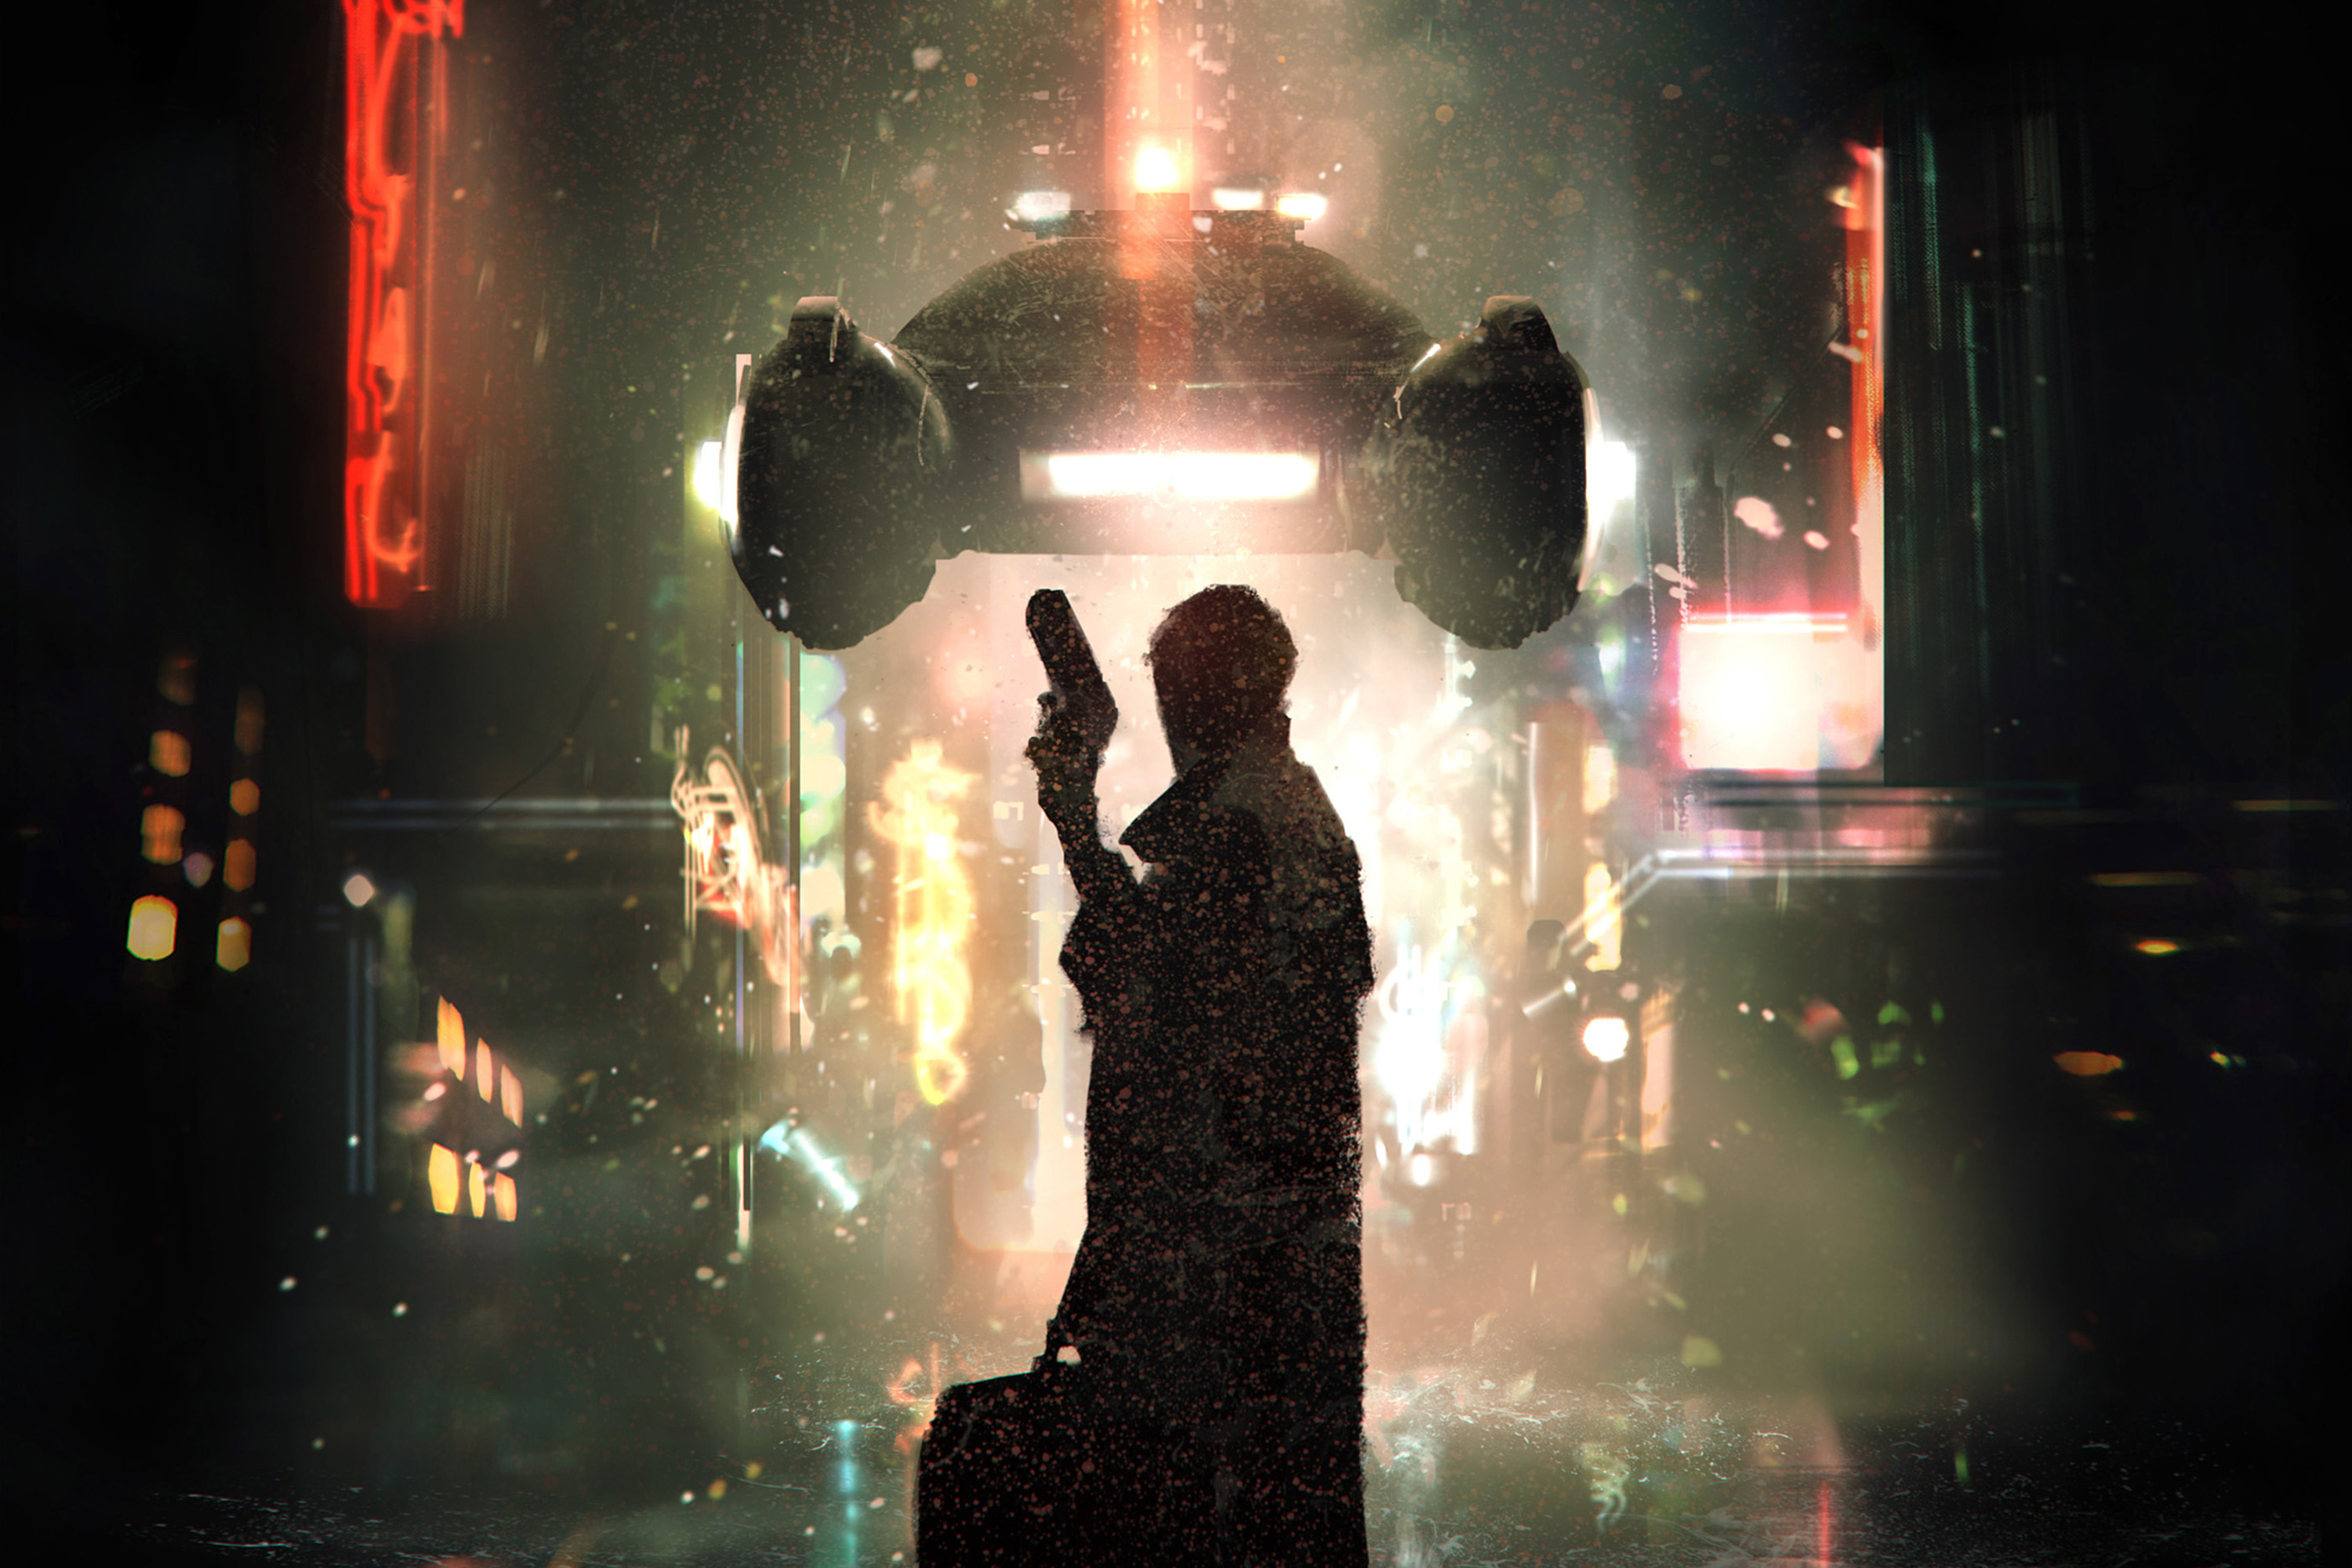 A blade runner holding a gun and a bag stares down a flying car in a rain-soaked, neon-lit scene from near-future LA.